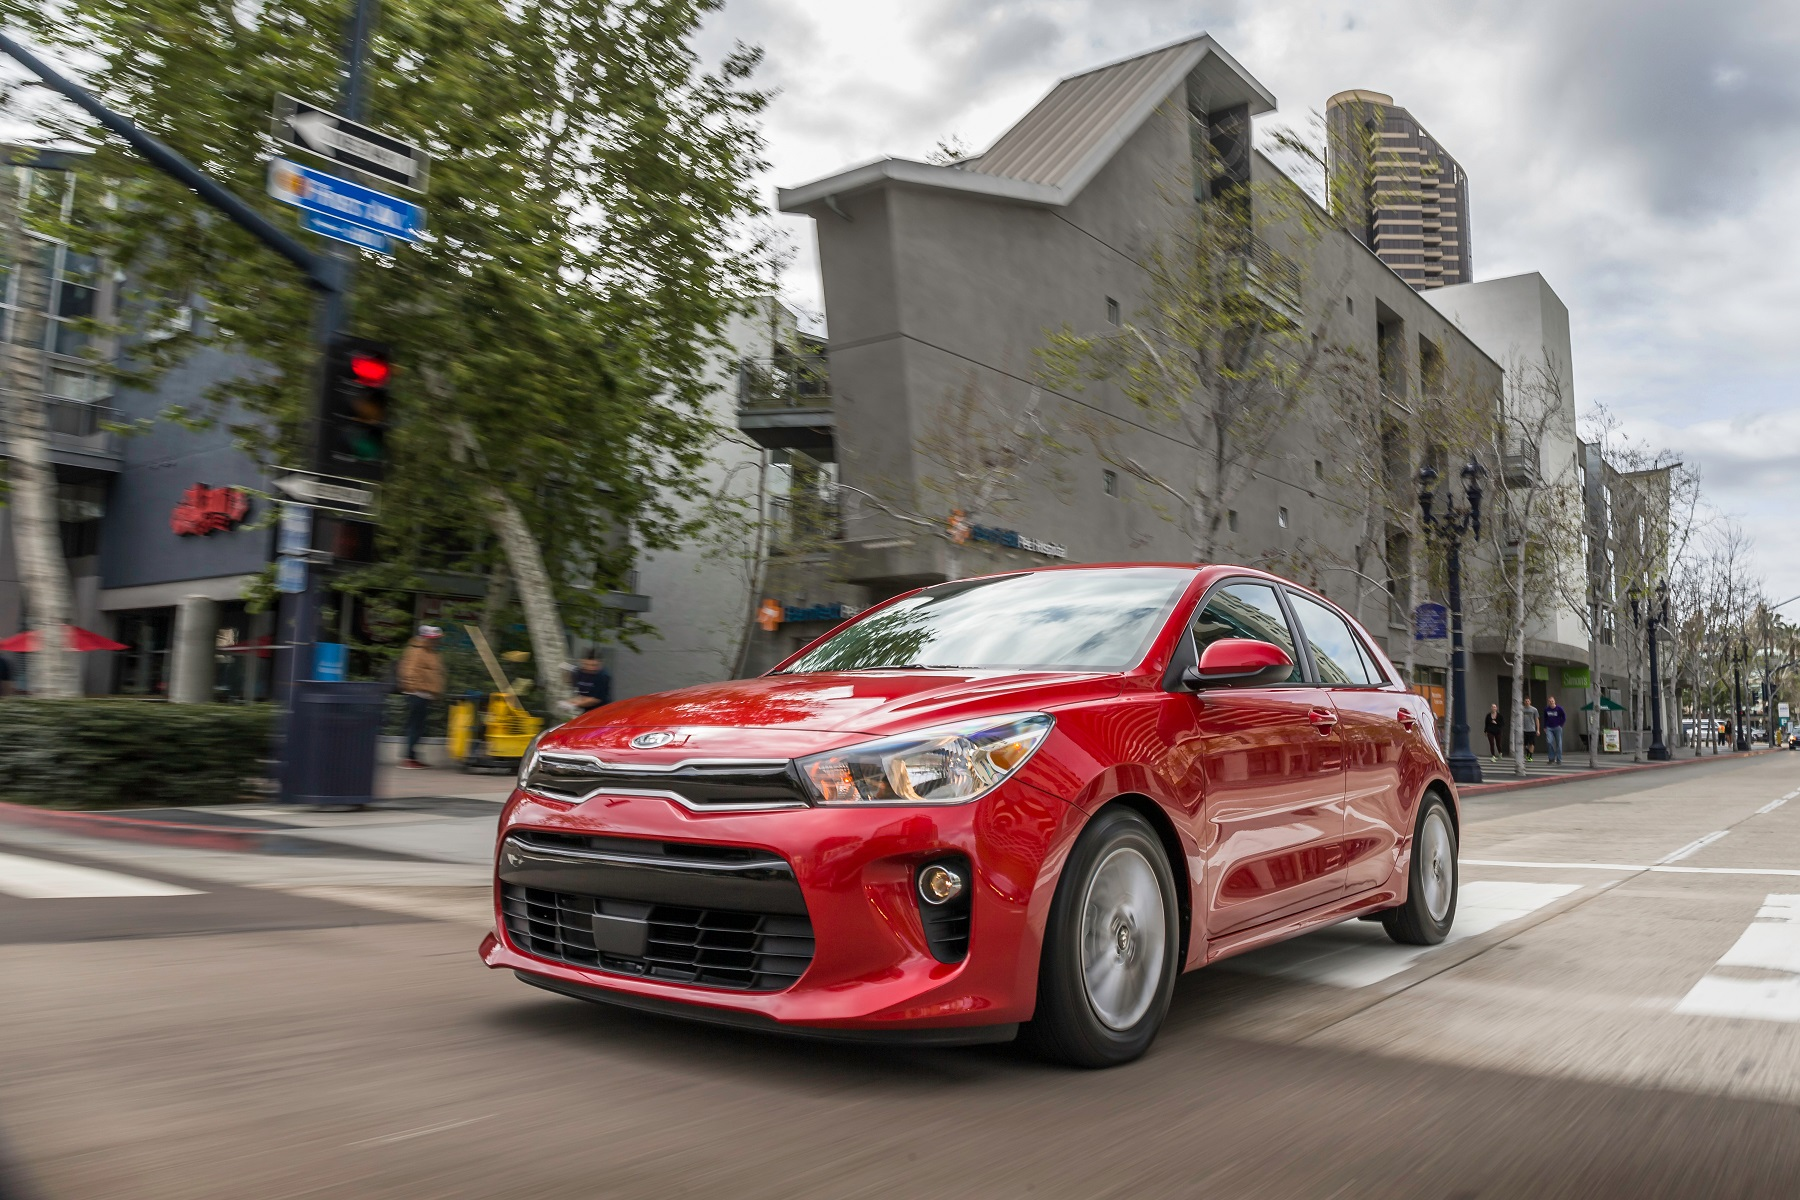 Kia Rio All New For 2018 New On Wheels Groovecar